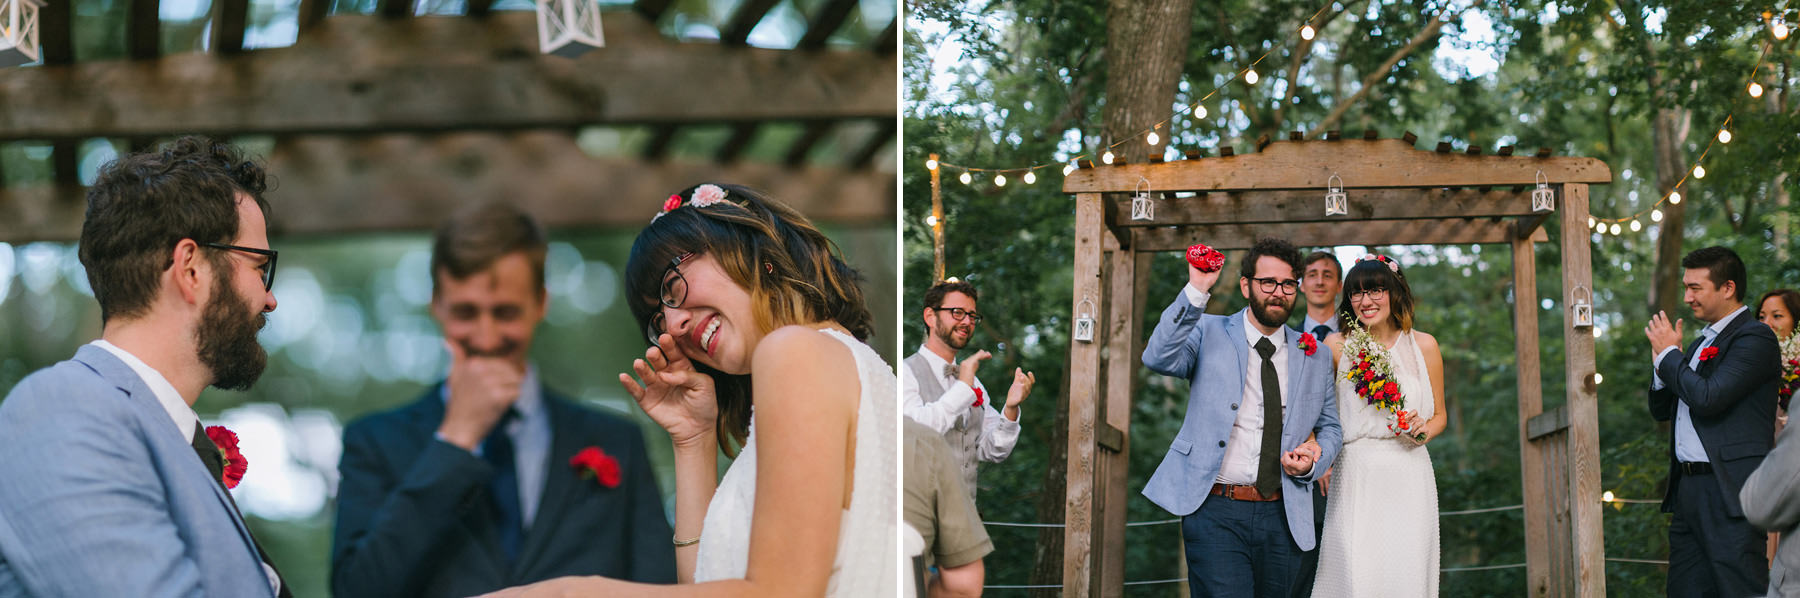 280_Blackberry Creek Outdoor Ozarks Wedding Springfield, Missouri_Kindling Wedding Photography.JPG